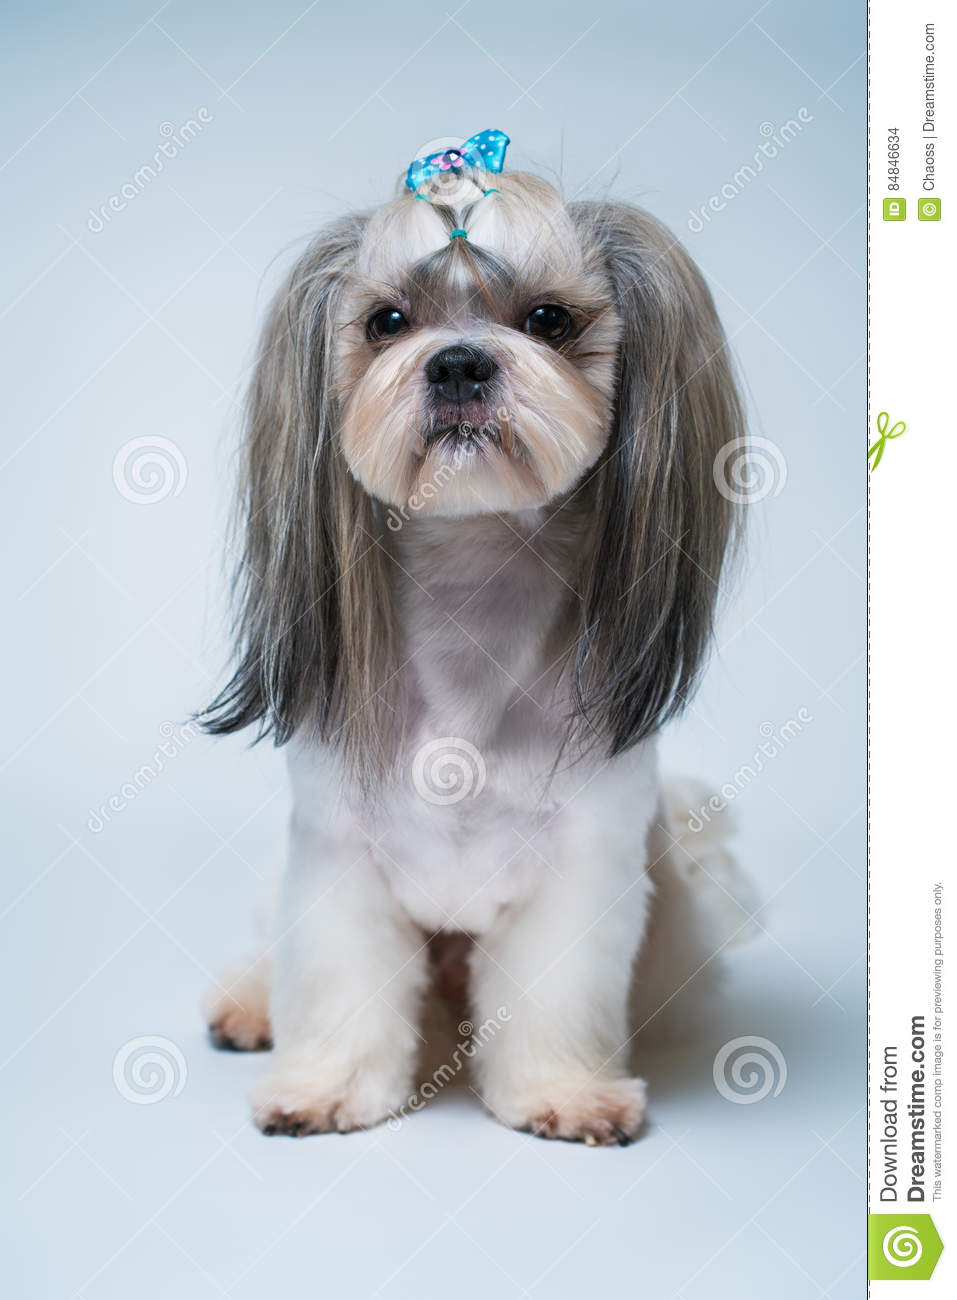 Shih Tzu Dog Stock Photo Image Of Studio Breed Front 84846634